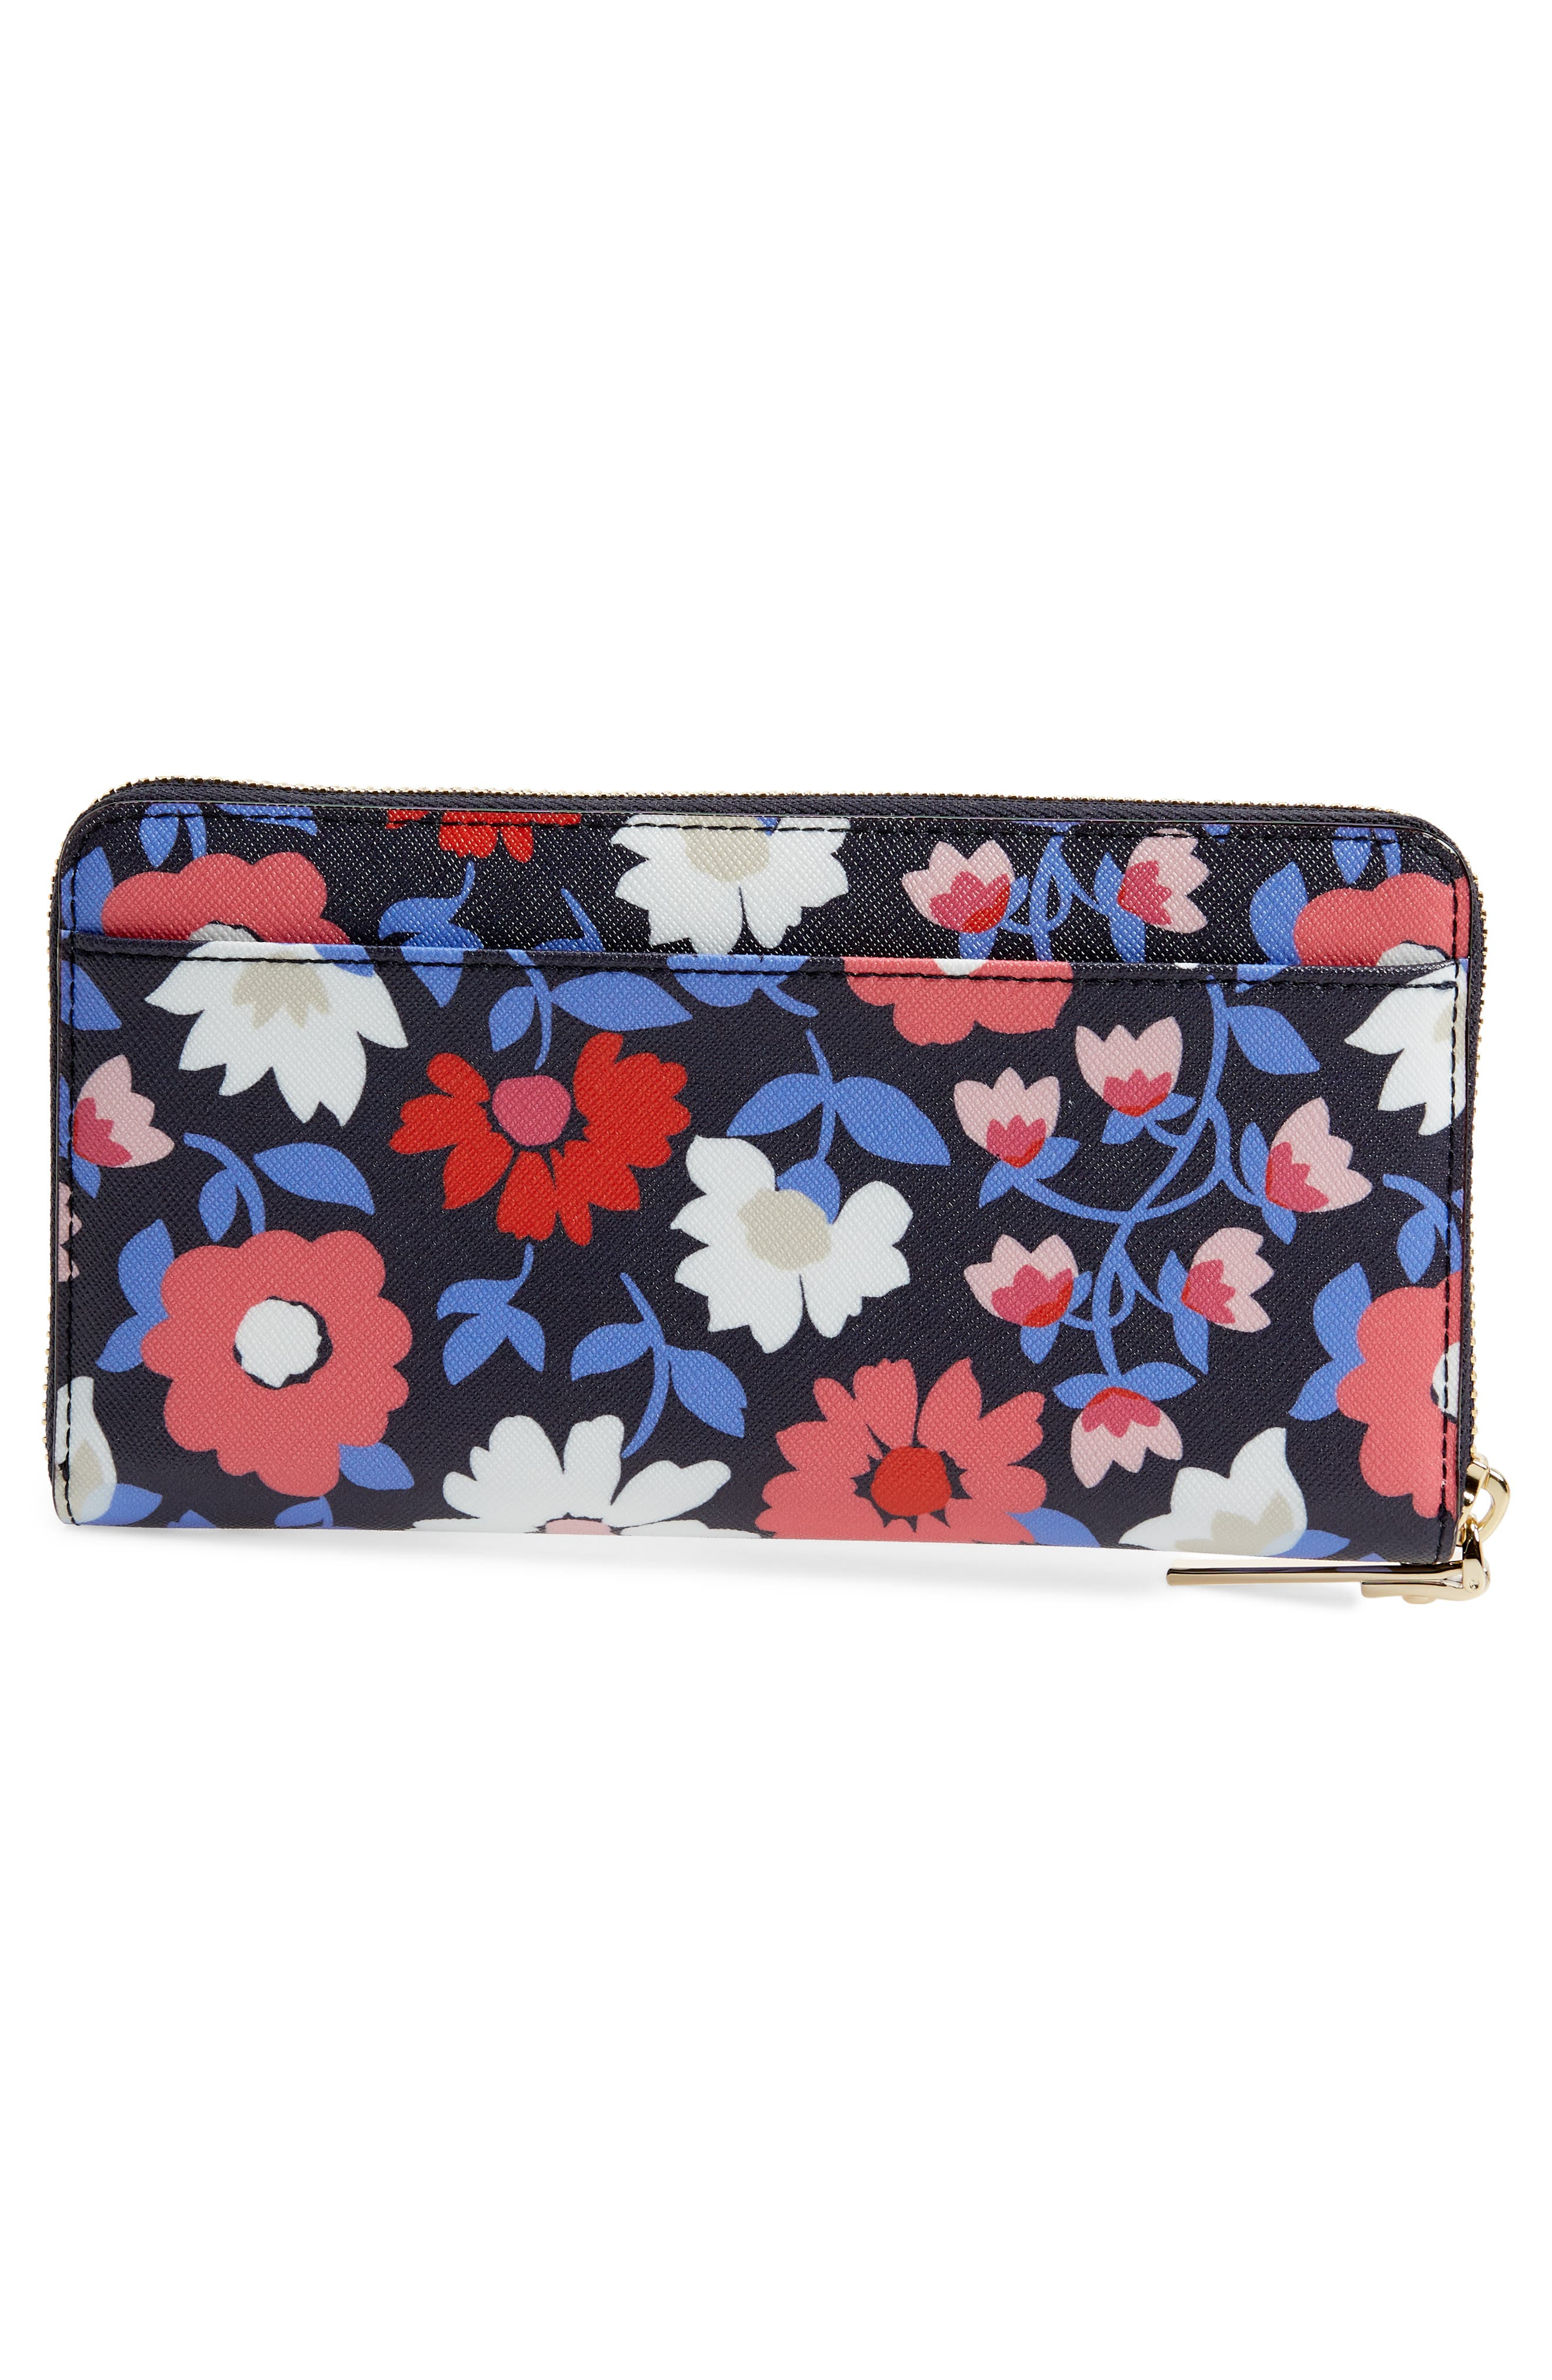 cameron street - daisy lacey zip around wallet,                             Alternate thumbnail 4, color,                             Multi